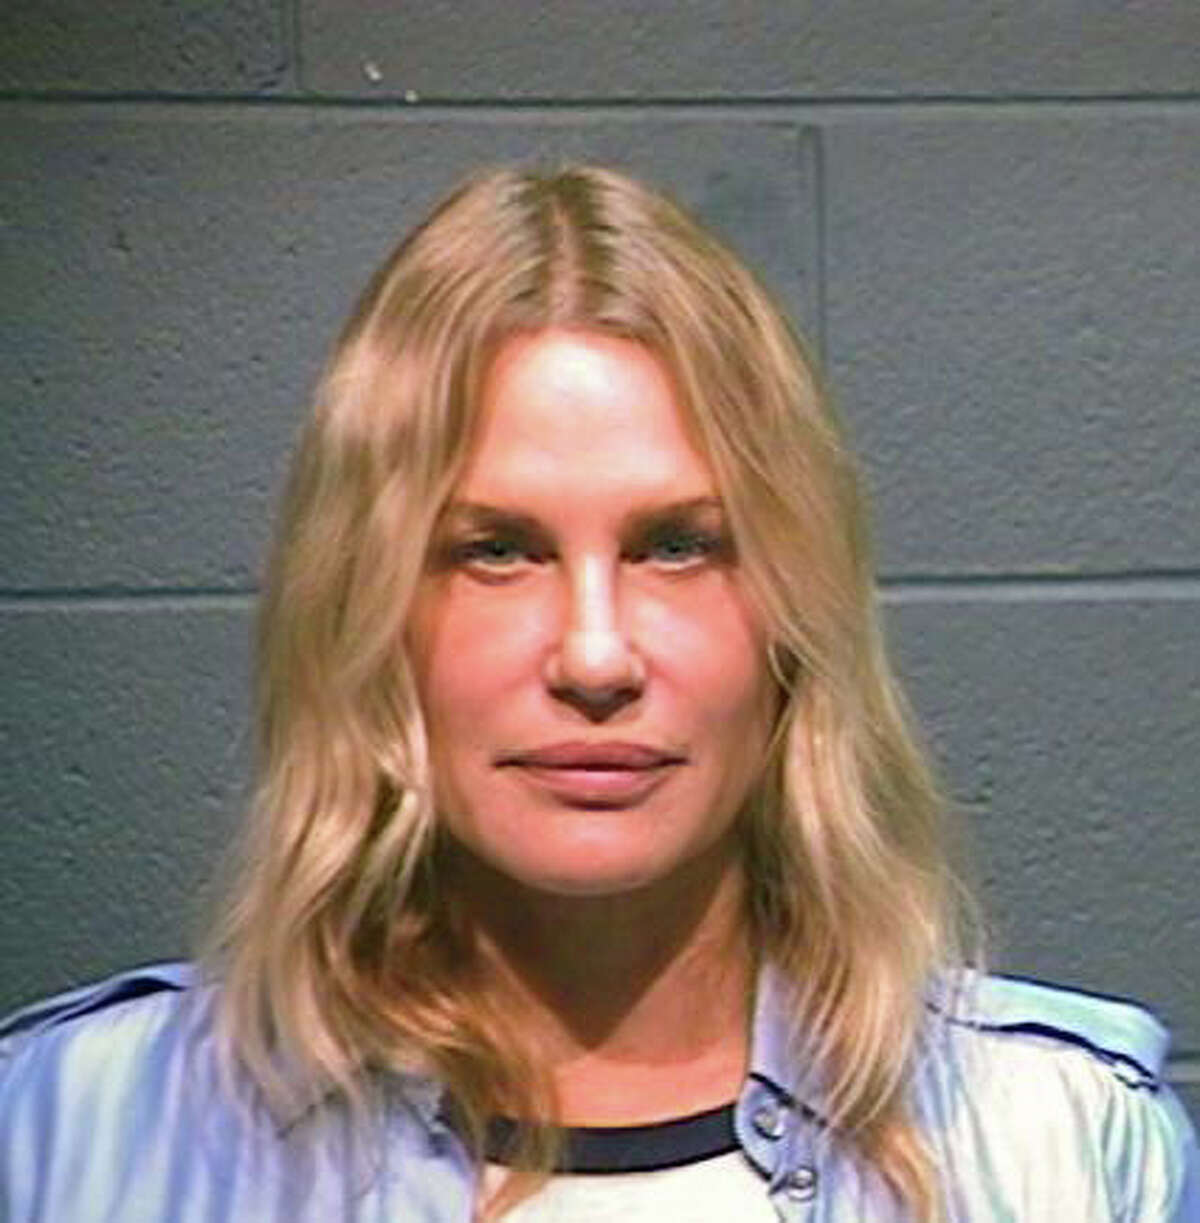 Actress Daryl Hannah, seen in a police booking photo, was arrested Oct. 4 while protesting the Keystone XL oil pipeline in Winnsboro.